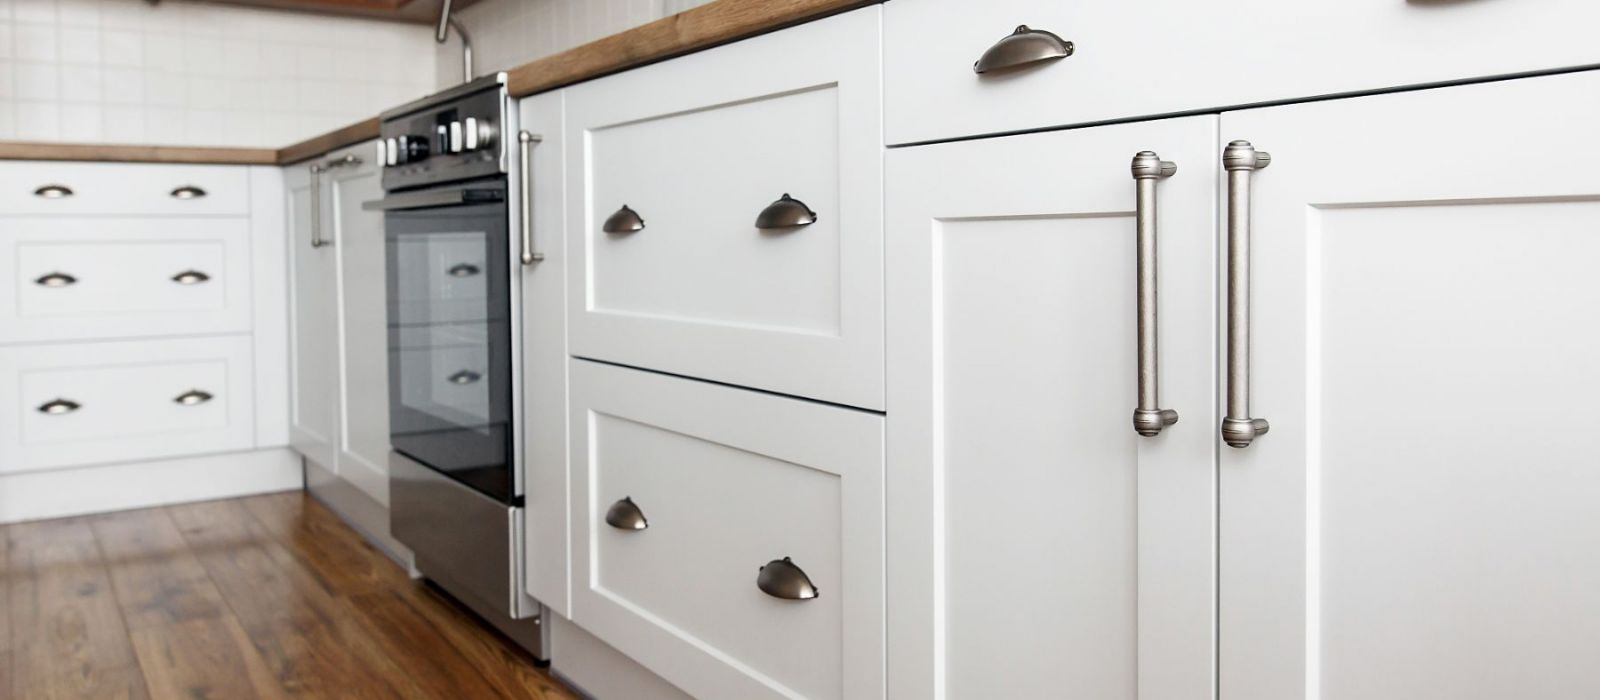 Frugal Kitchens Cabinet Options